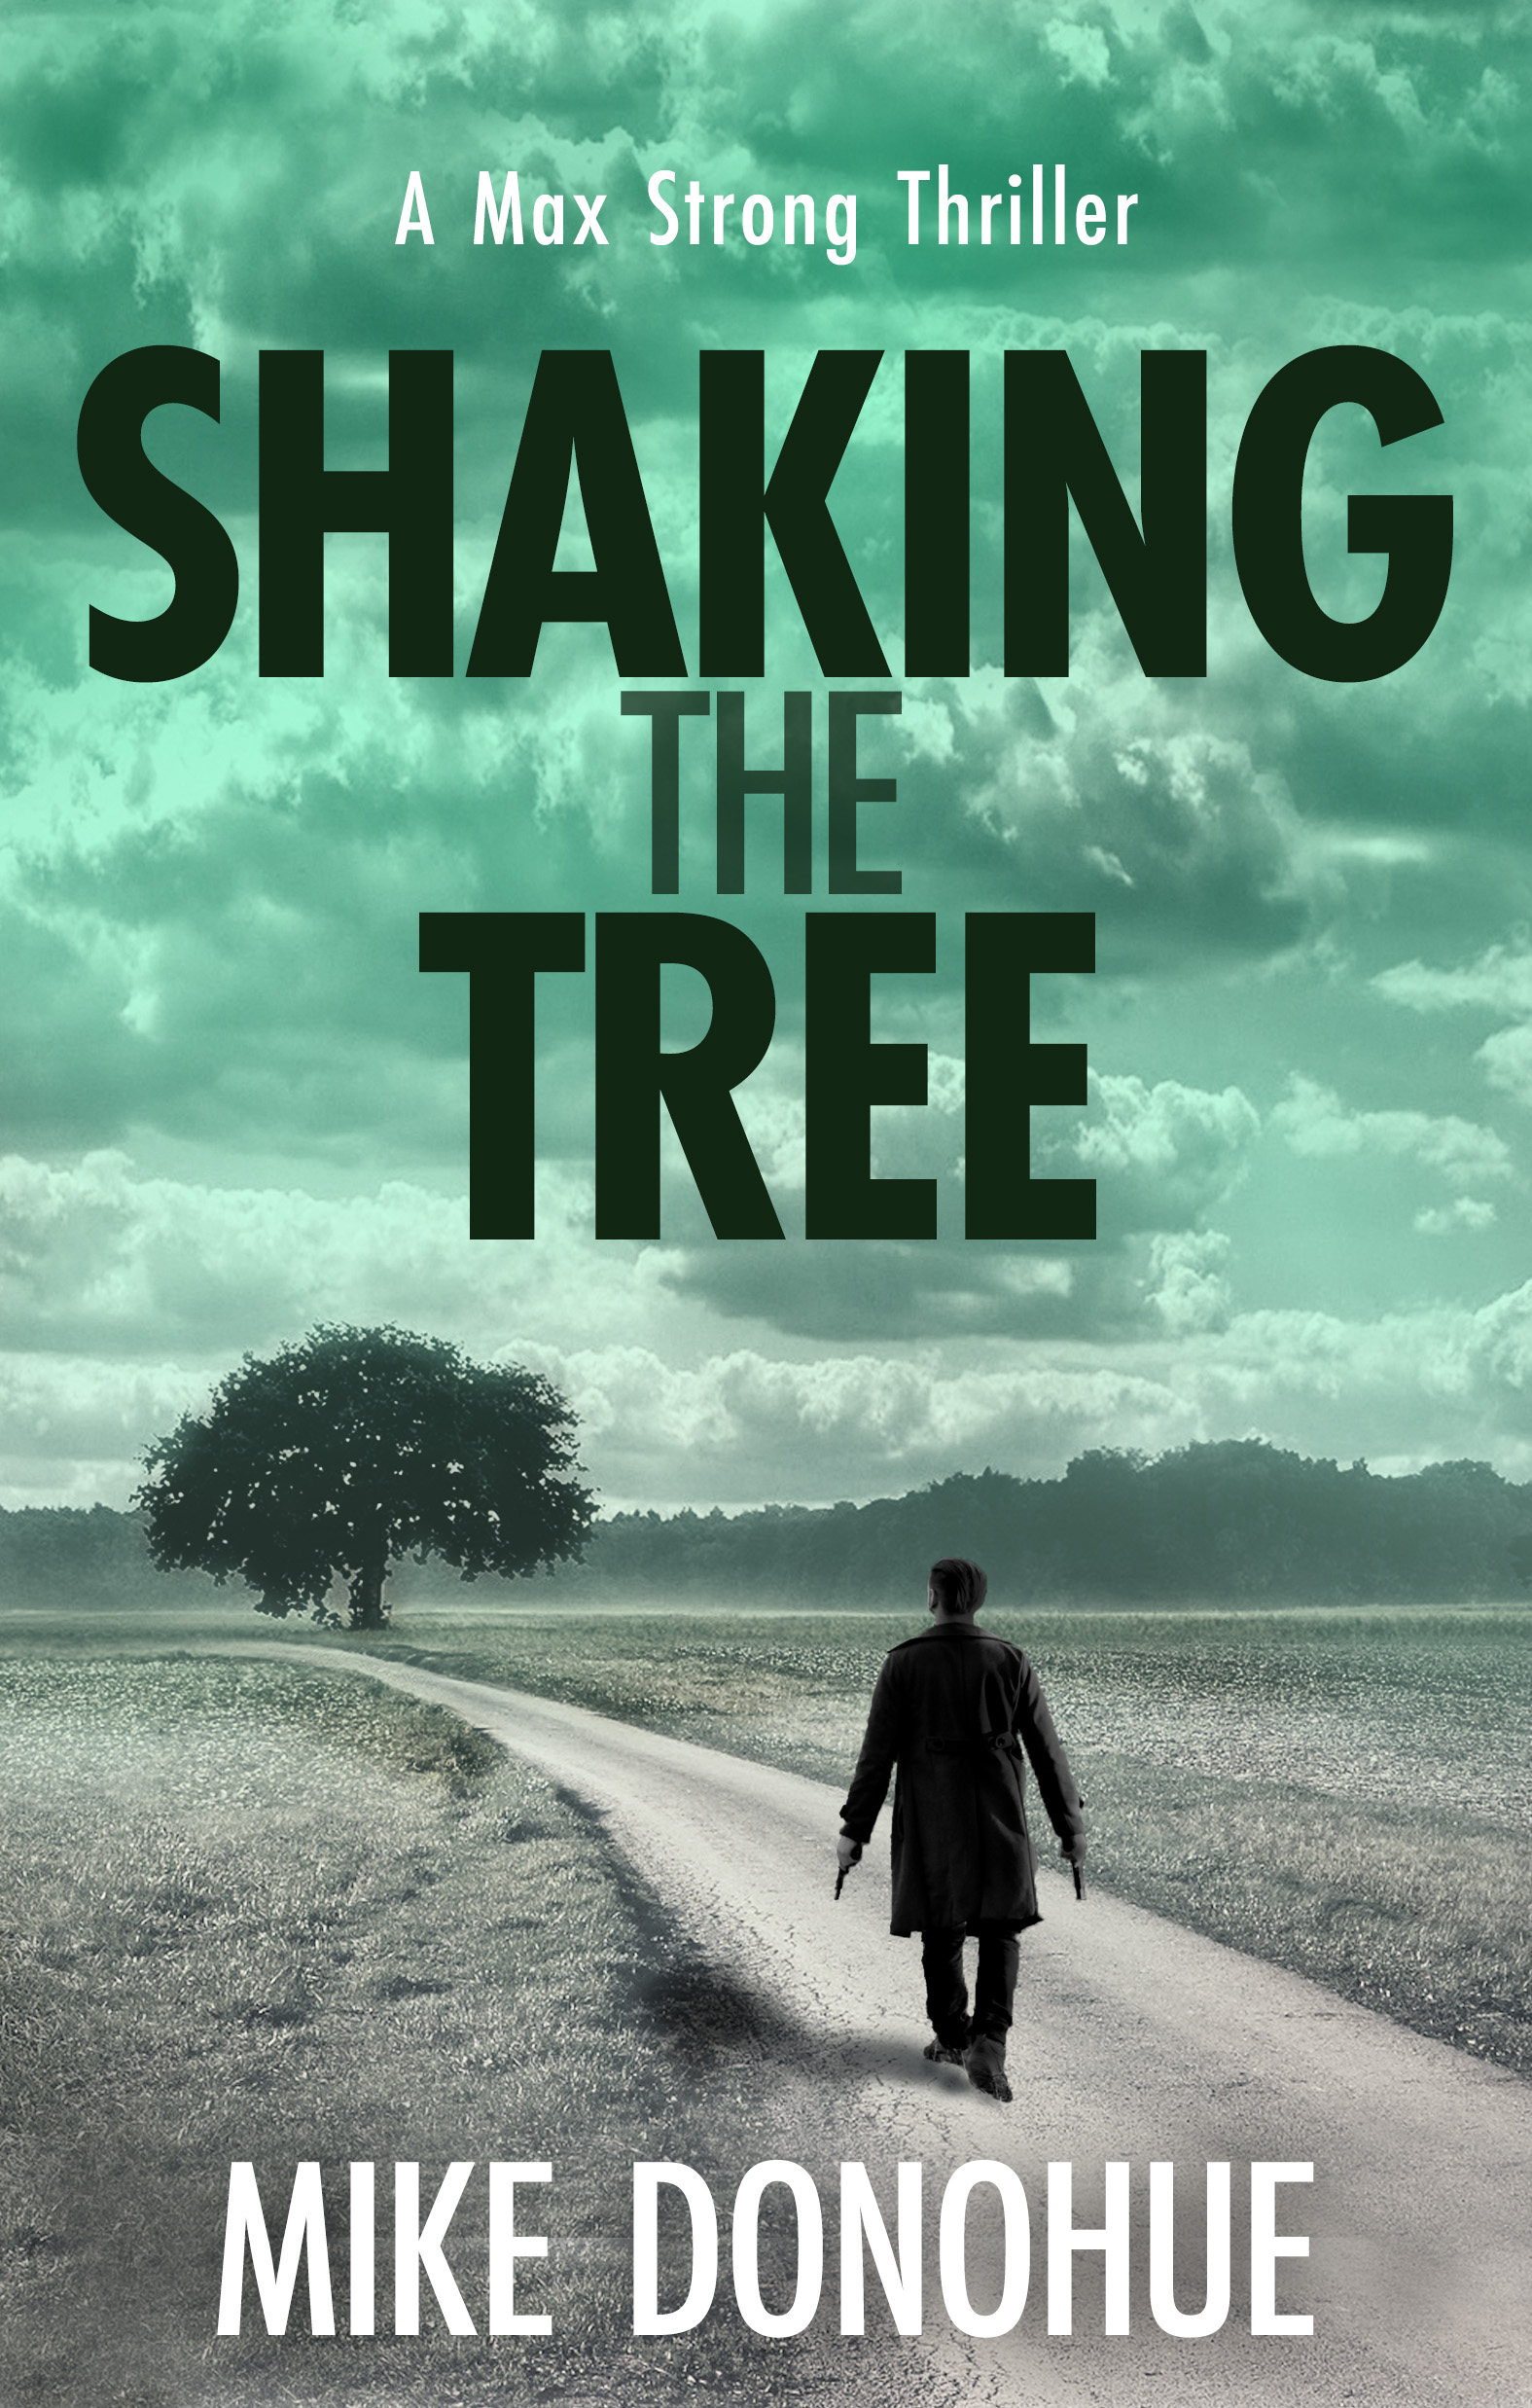 Shaking the Tree